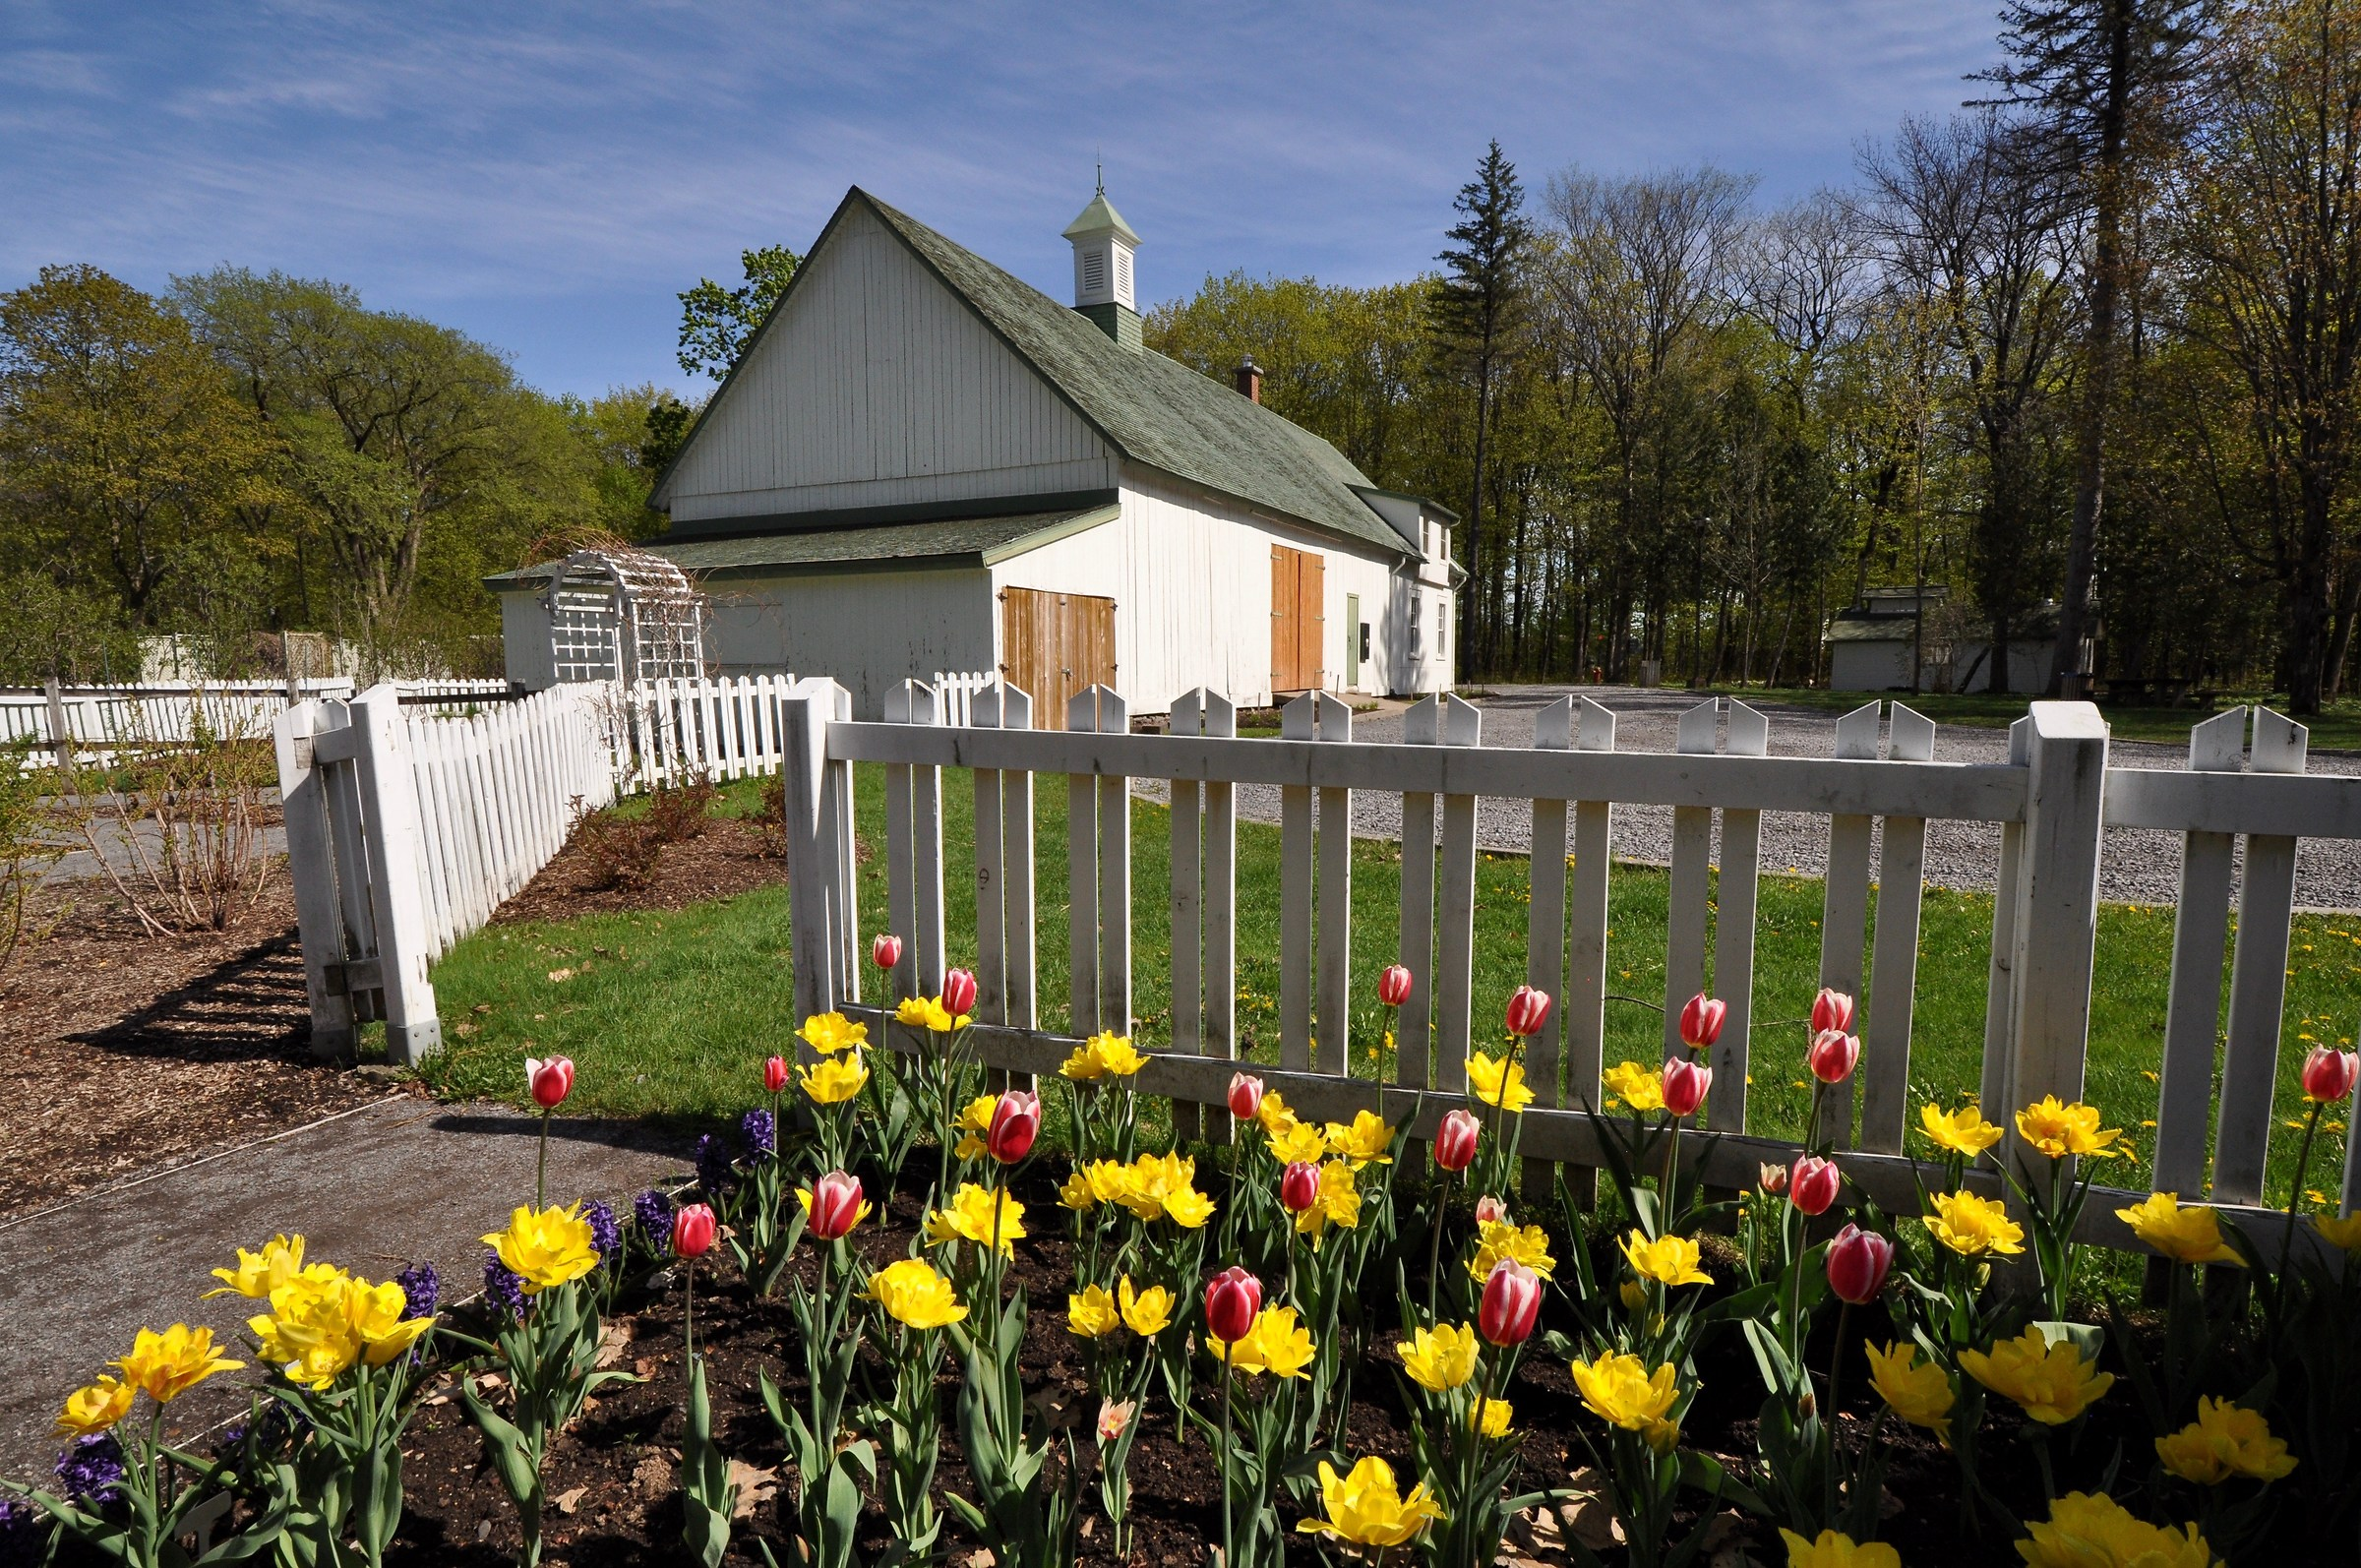 The joys of spring colors '' Tulips Quebec ''...